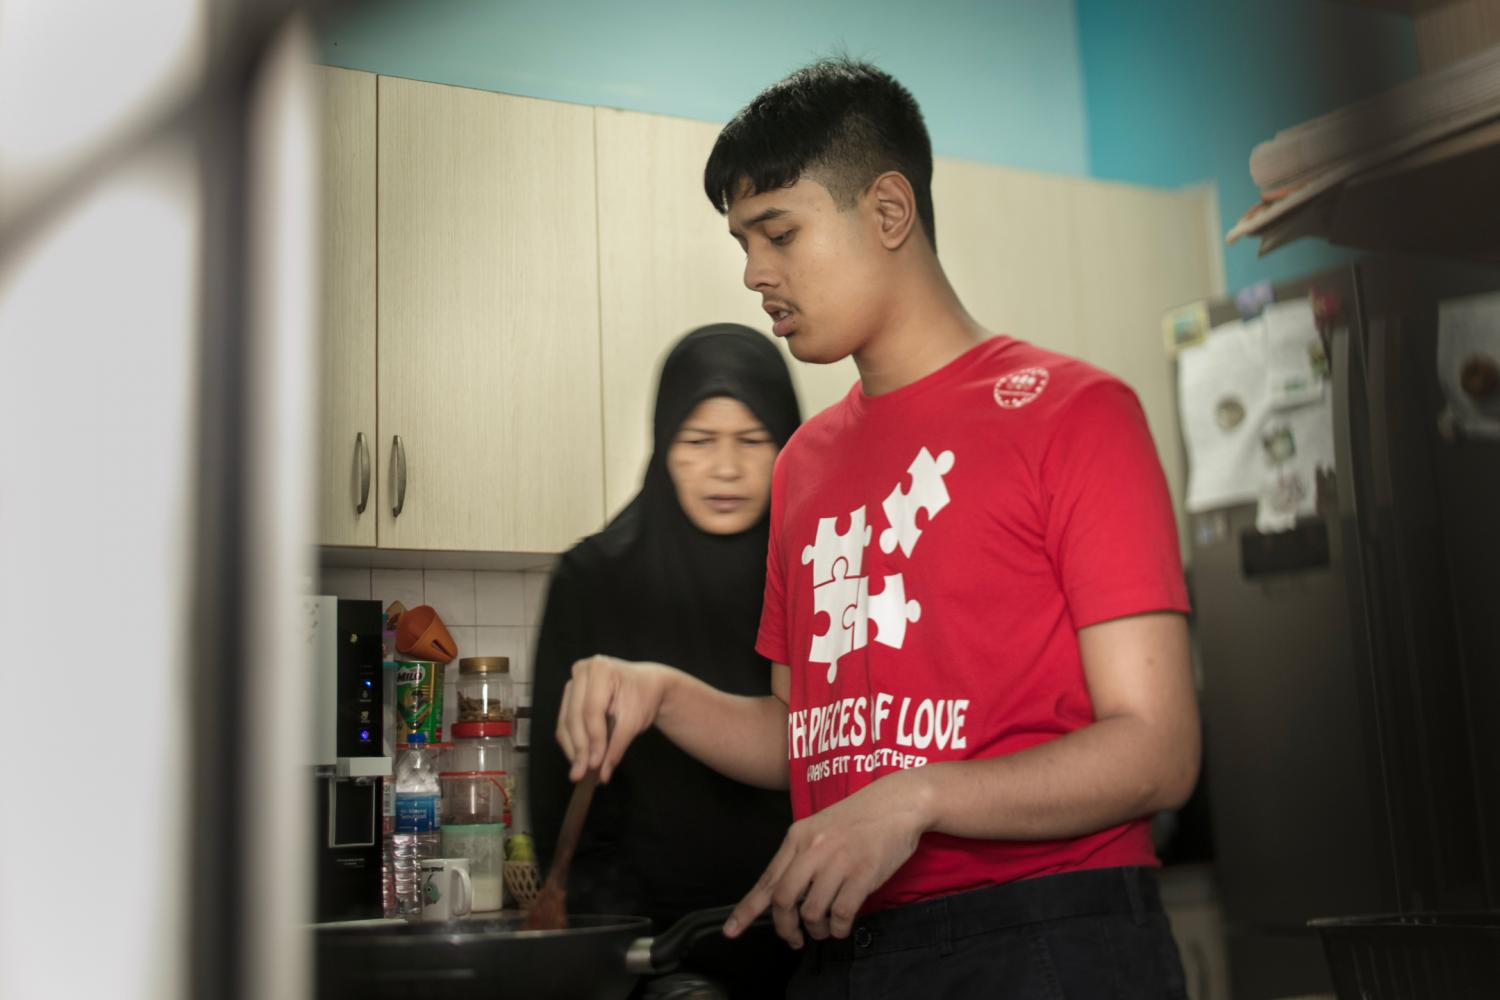 Ultimately, Adli and Nozilan hope for the Project to teach Luqman basic practical skills, and to help secure his future when they are no longer around.